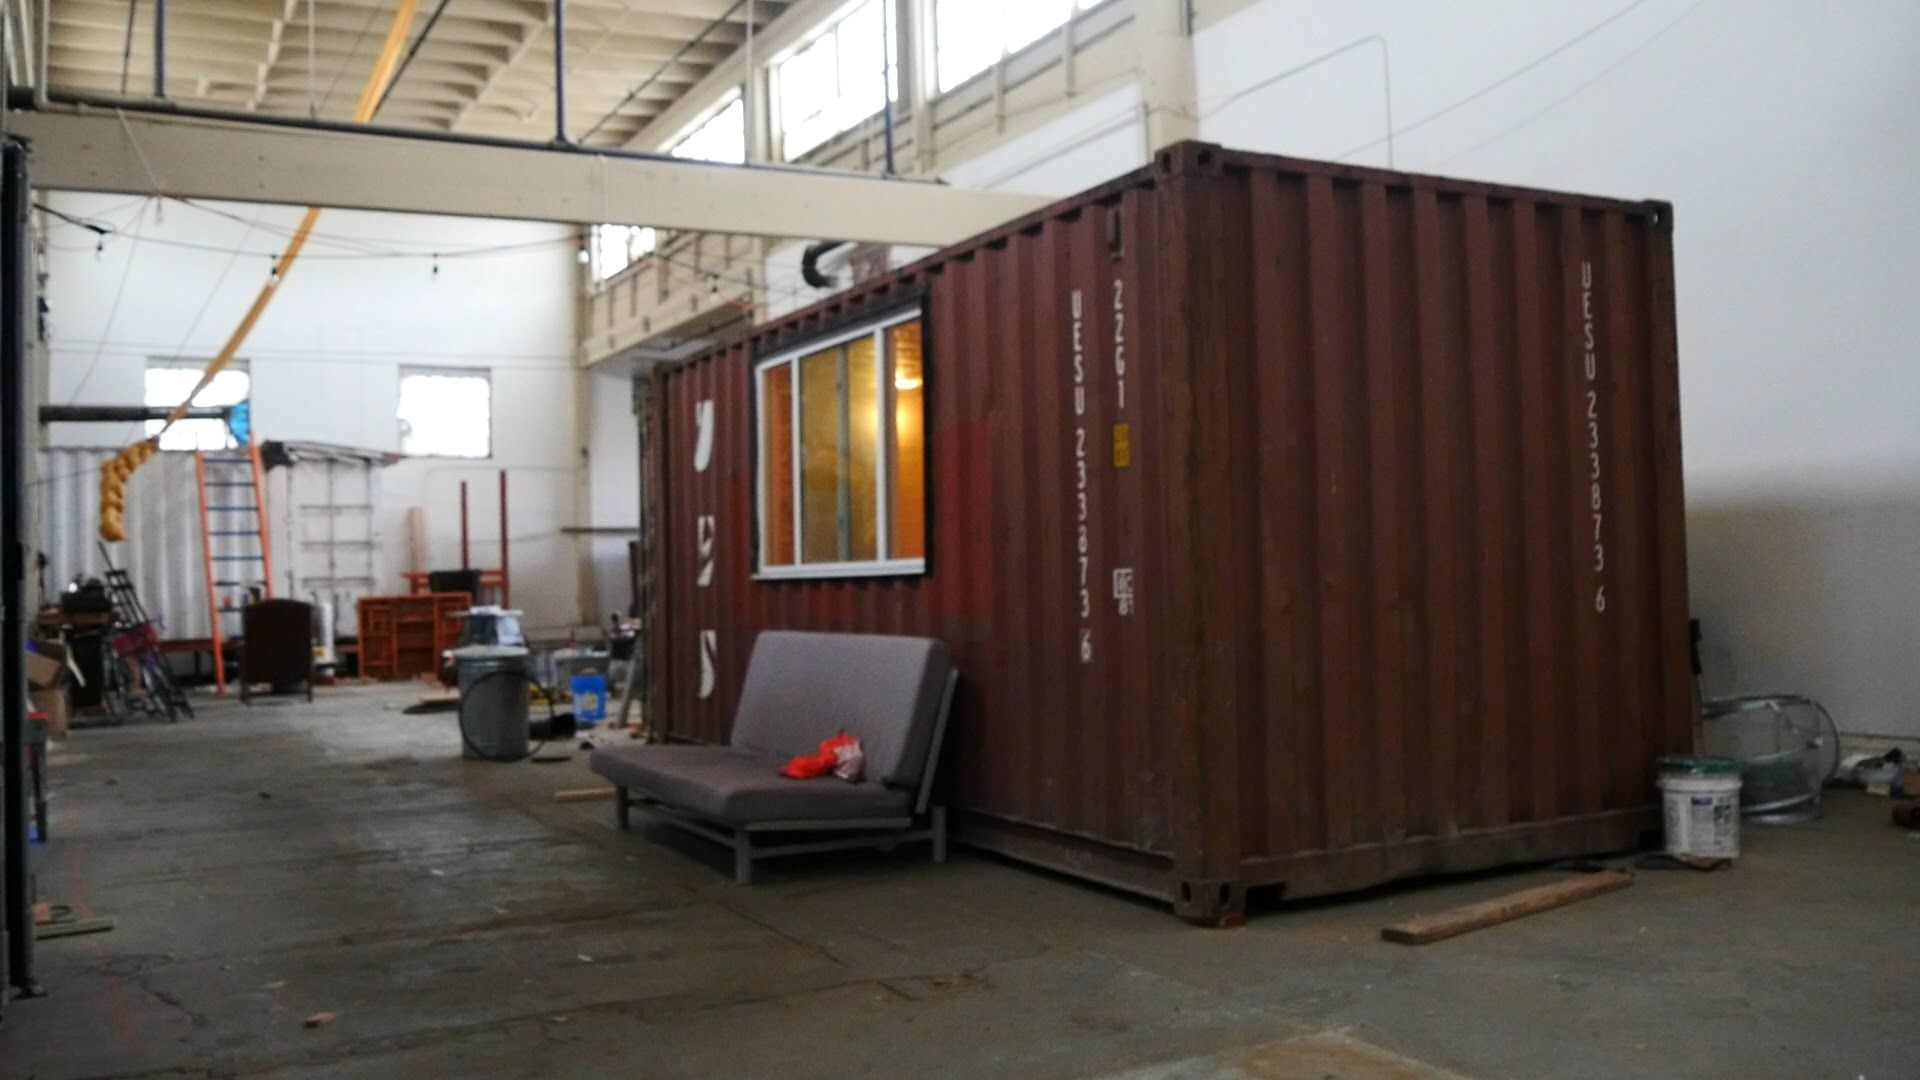 Step inside an underconstruction shipping container tiny home uc